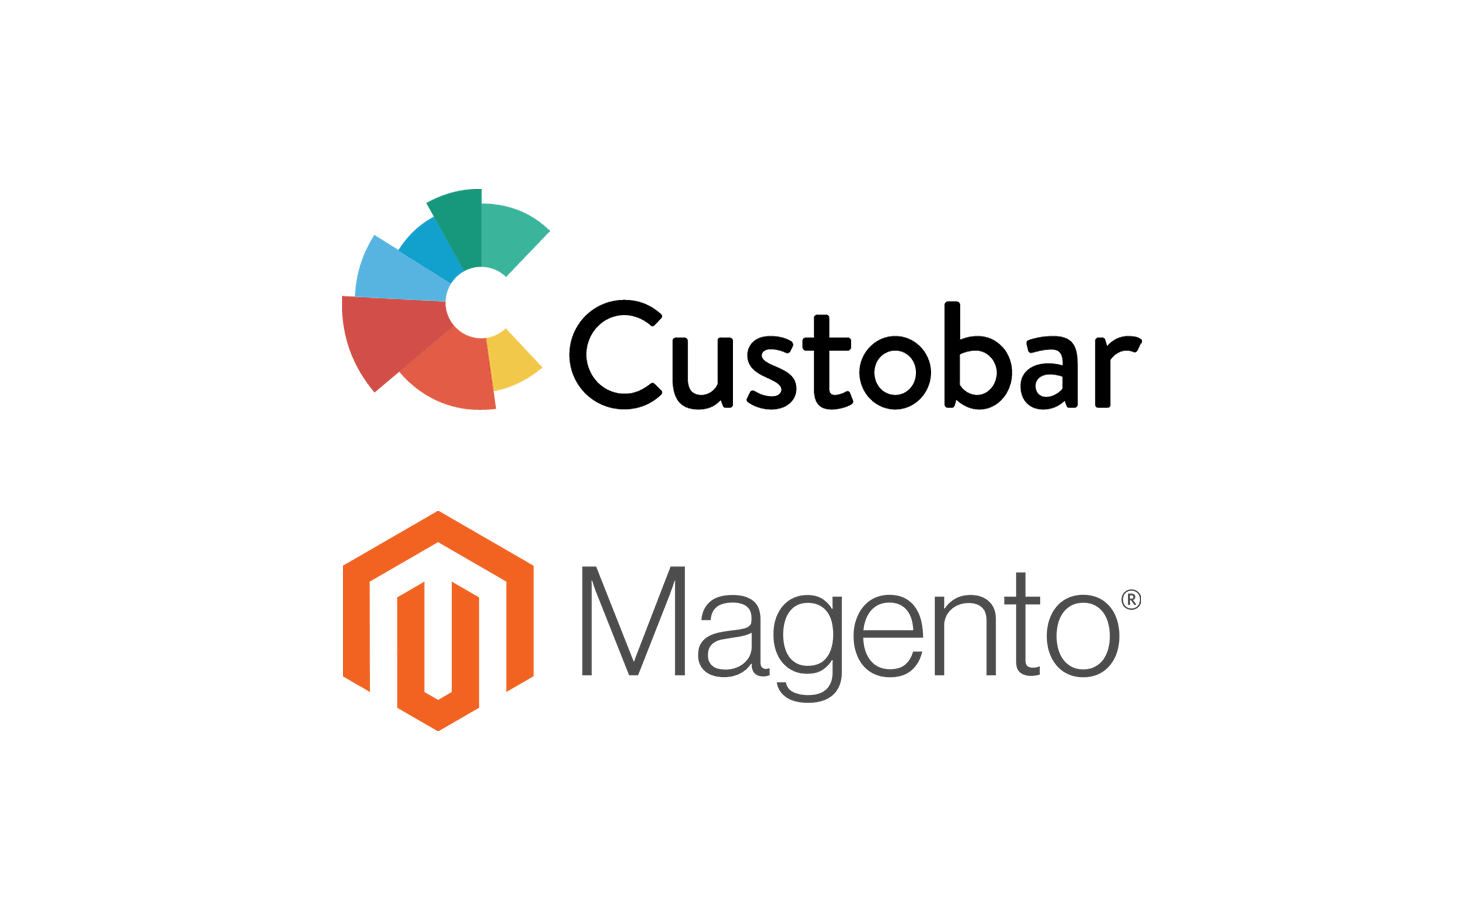 Just out! Find Custobar in Magento Marketplace